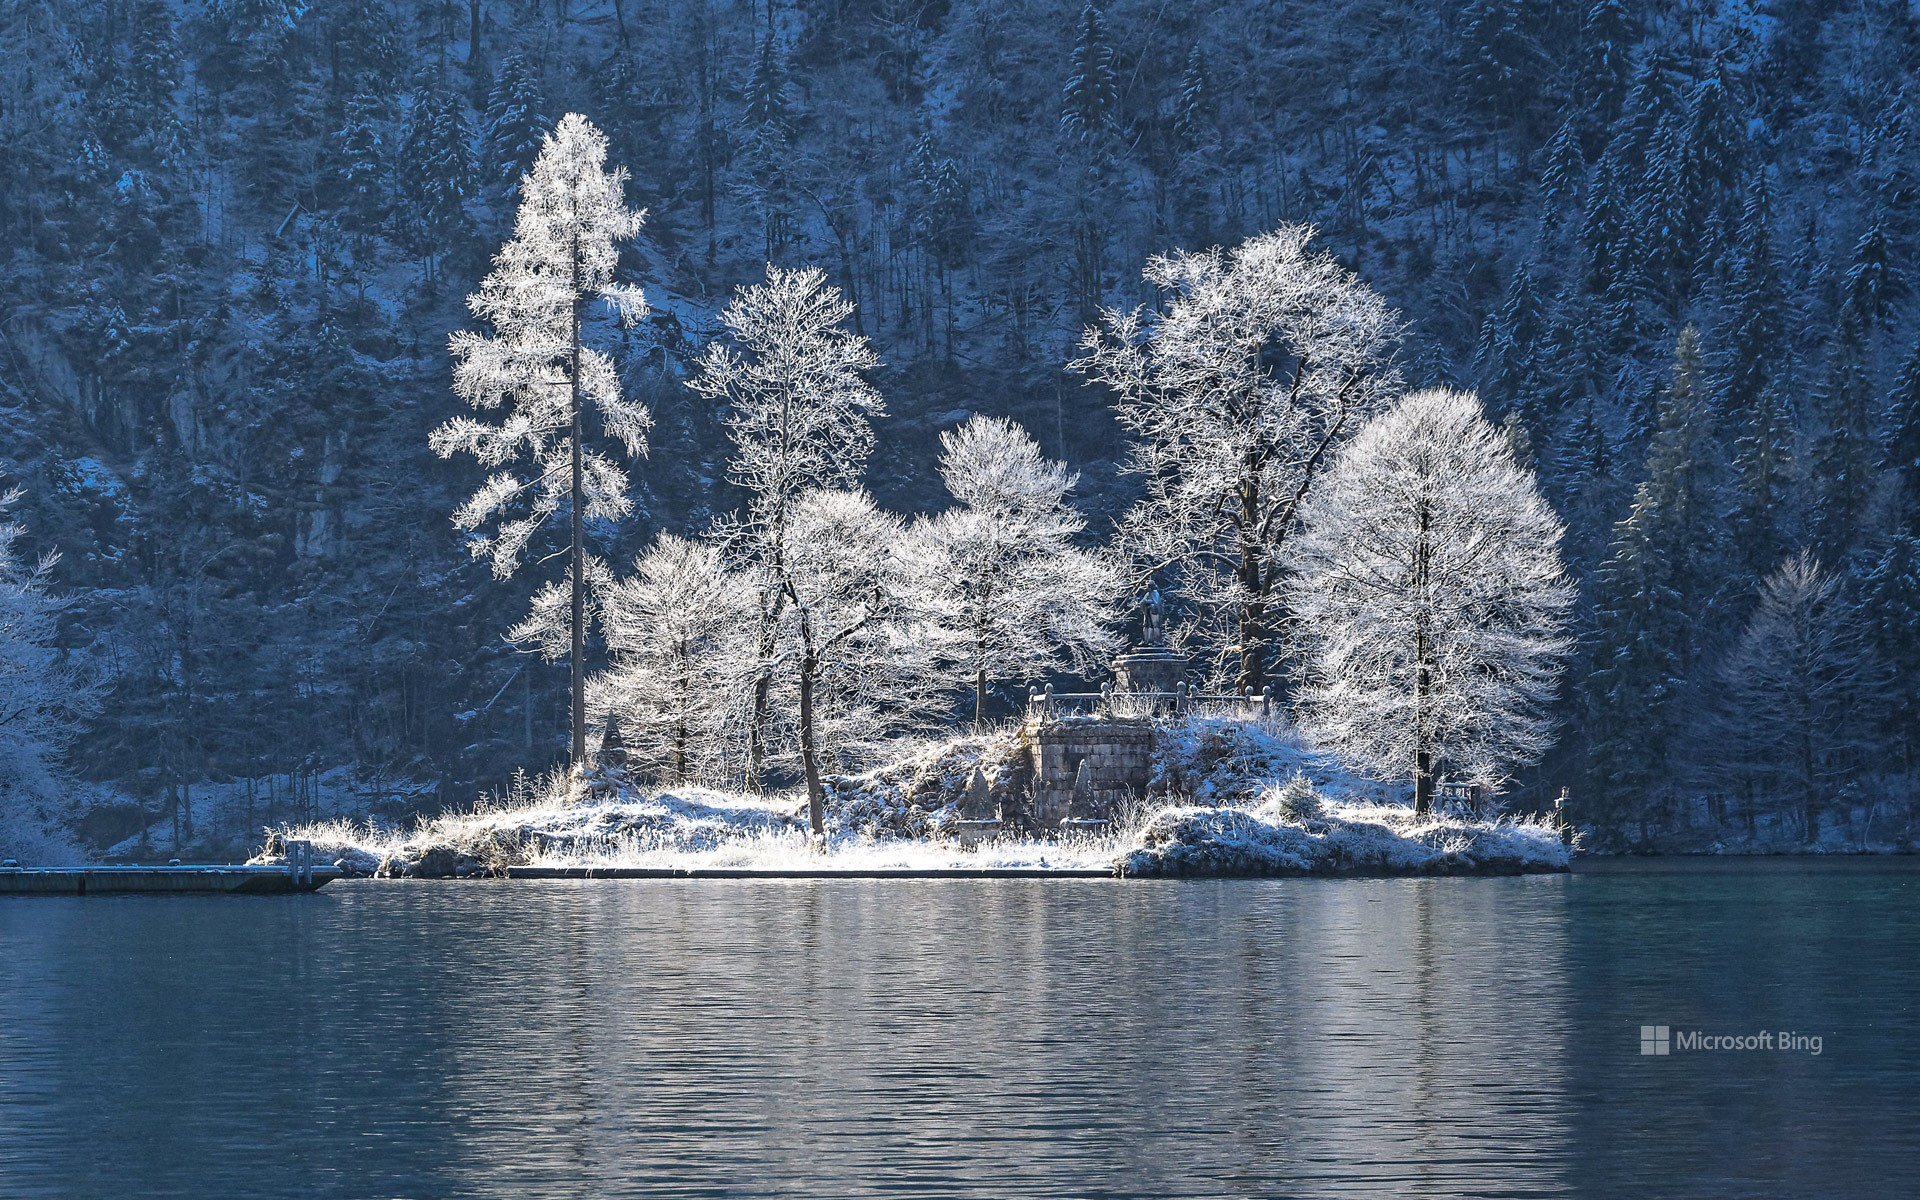 The island of Christlieger in Koenigssee, Bavaria